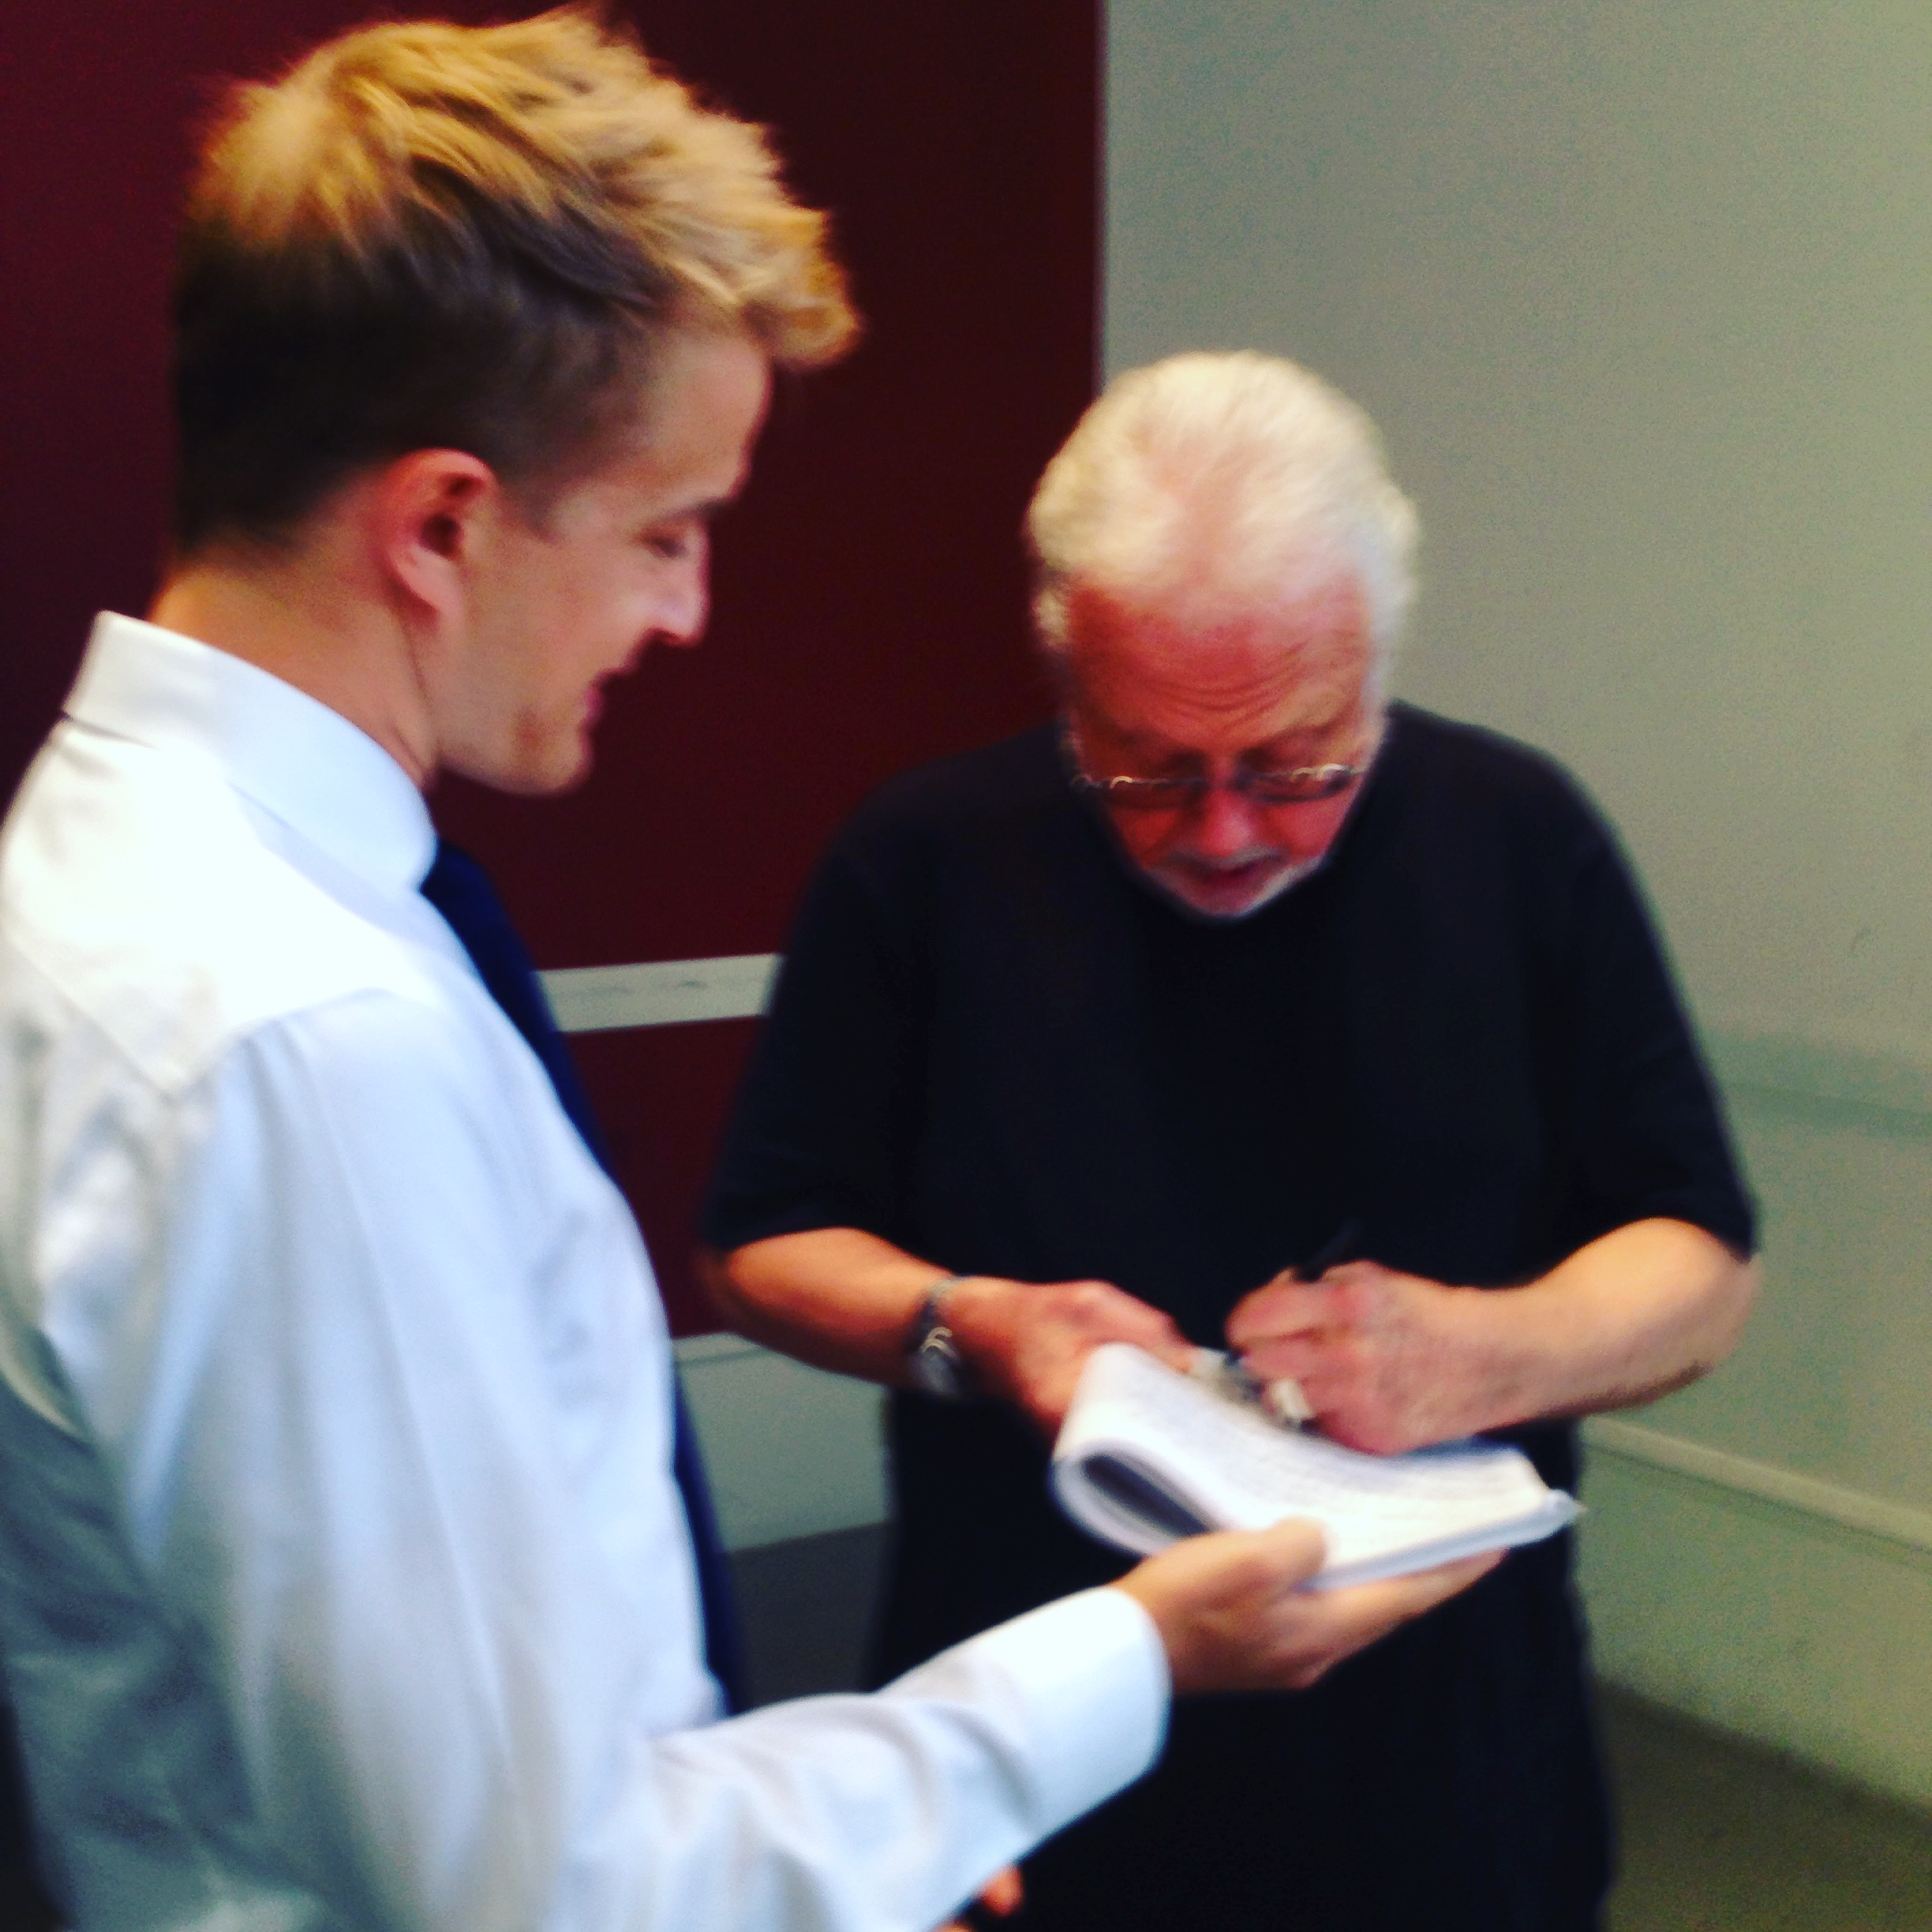 William Bolcom signing my score of his complete rags after I played his  Graceful Ghost Rag for him. We had an interesting chat about if and how much to swing his rags, and classic ragtime in general. He compared it to  notes inégales in Couperin.